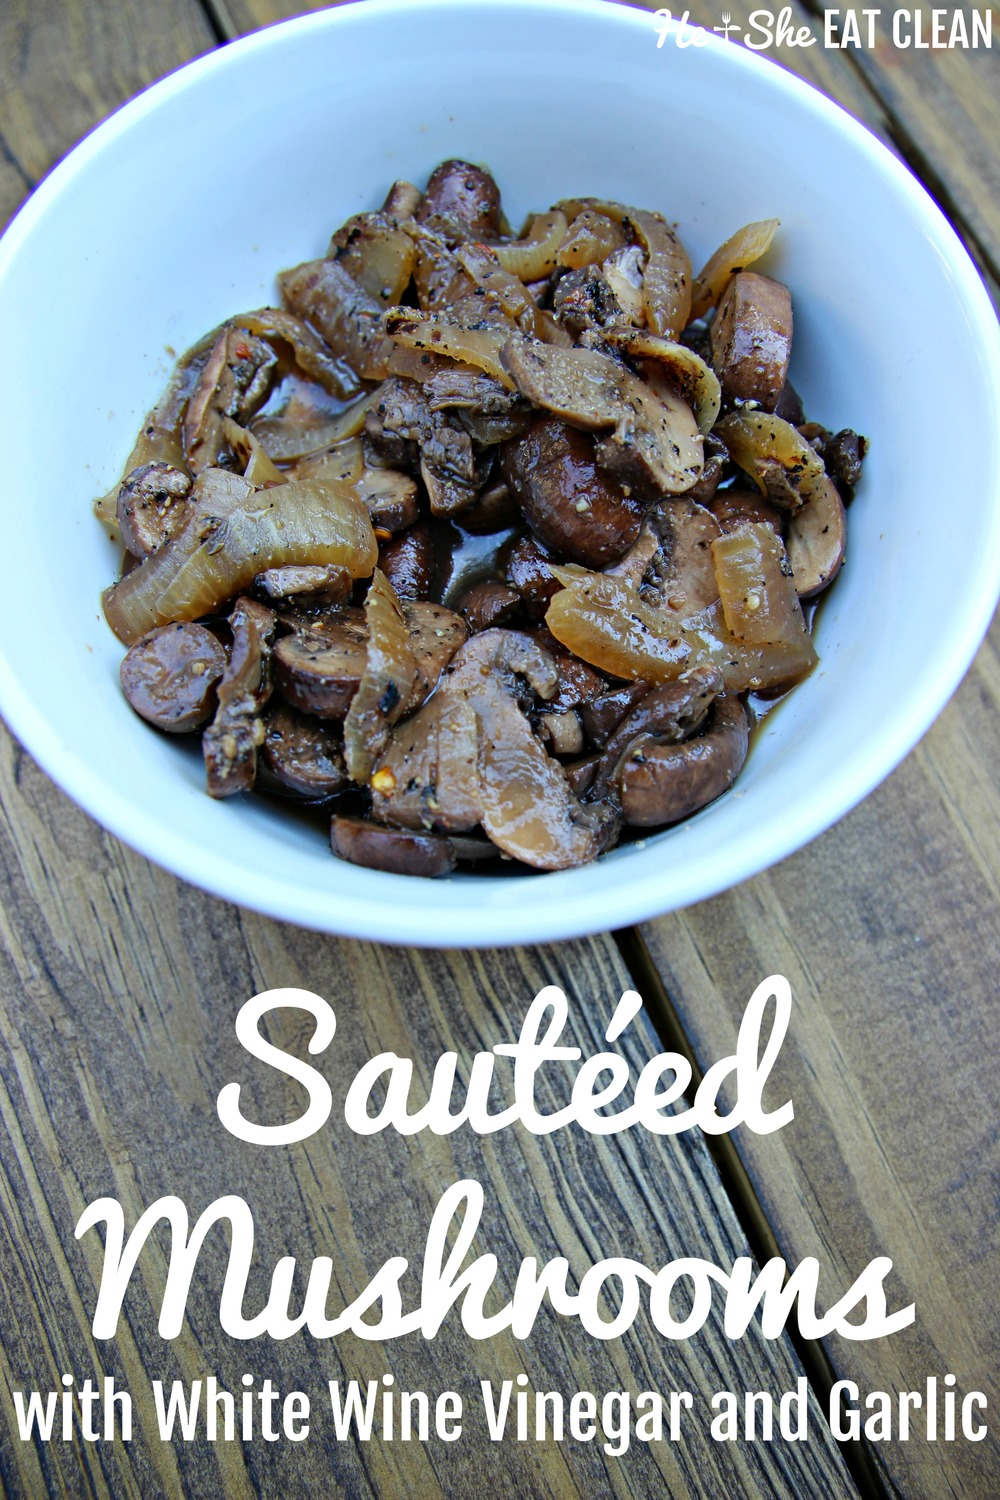 Clean Eat Recipe: Sautéed Mushrooms with White Wine Vinegar and Garlic | He and She Eat Clean